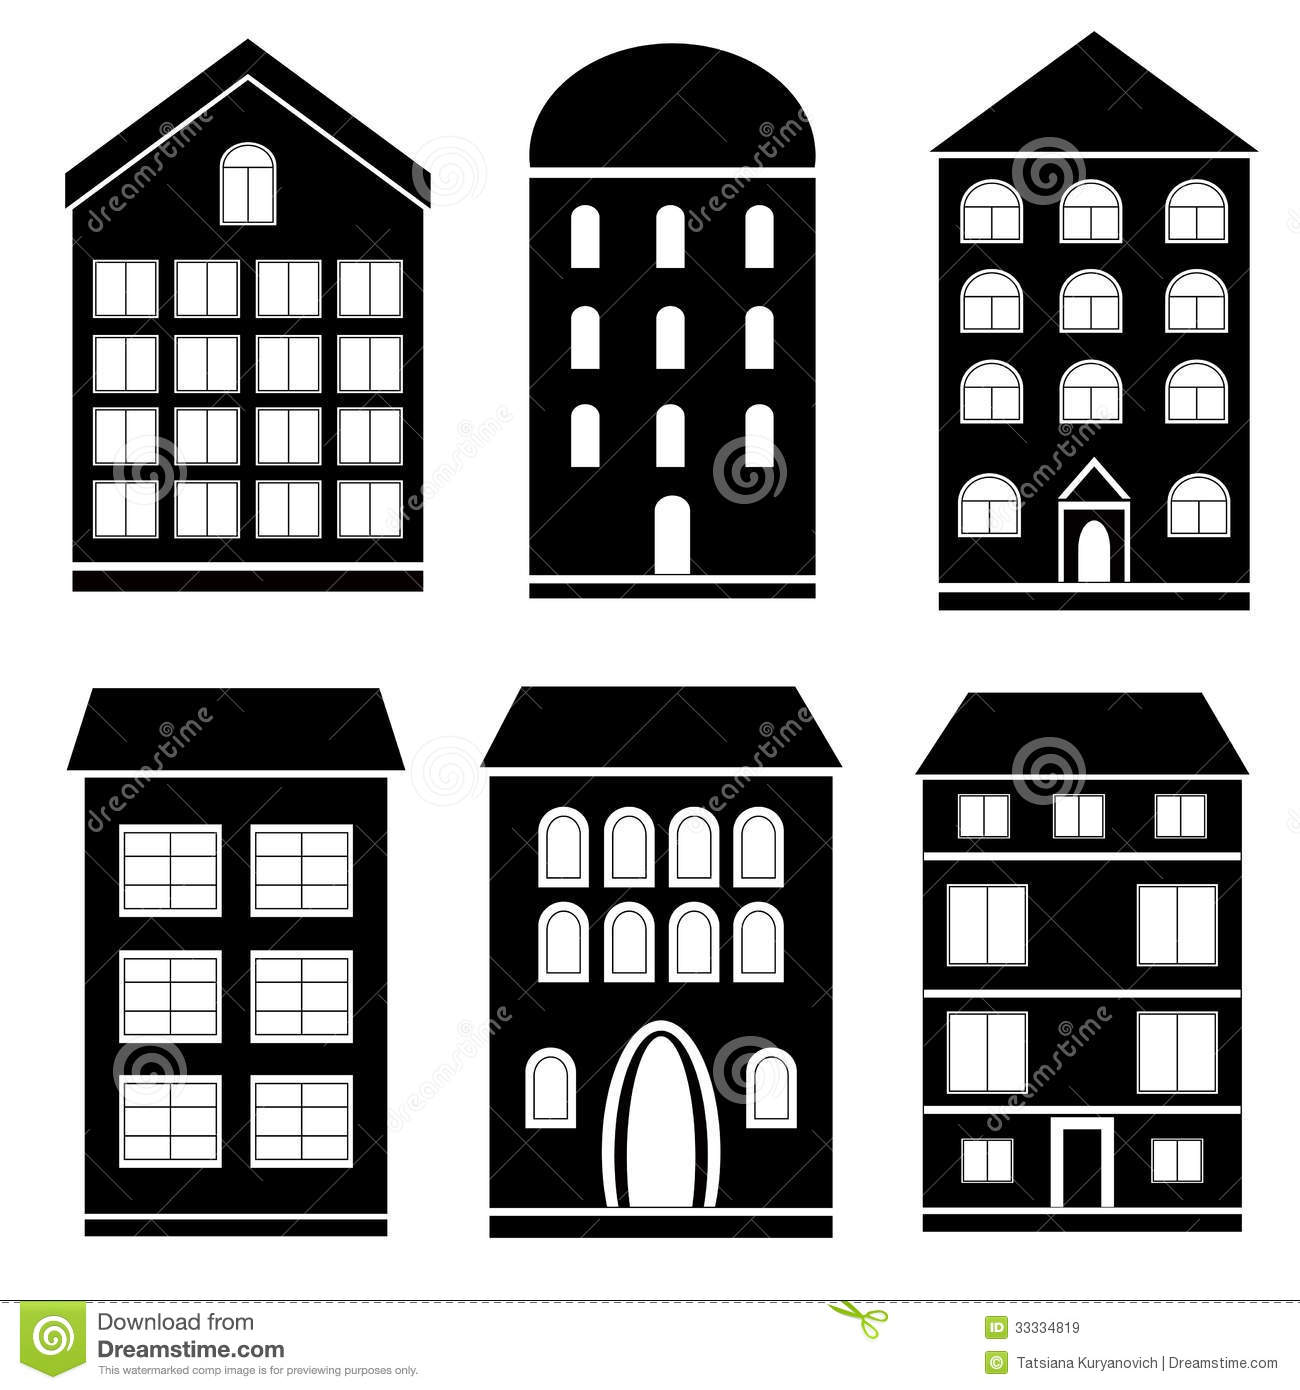 Building Black And White Set Stock Vector - Image: 33334819